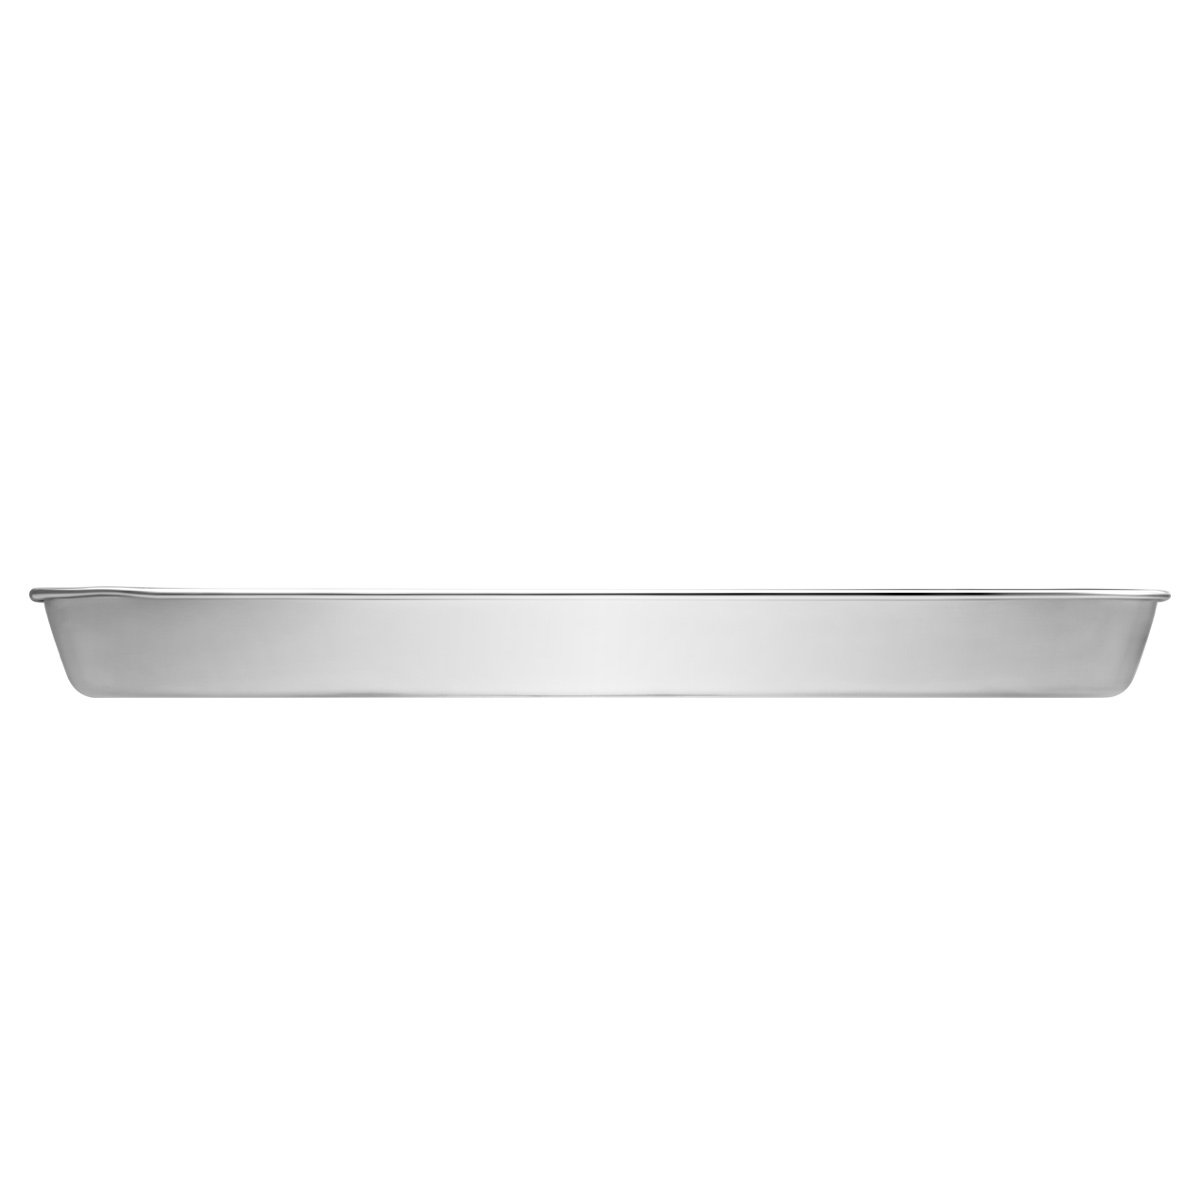 Stainless Steel Baking Sheets, HKJ Chef Baking Pans & Cookie Sheets for Oven & Mini Toaster Oven Tray Pans & Non Toxic & Healthy,Superior Mirror & Easy Clean by HKJ Chef (Image #3)